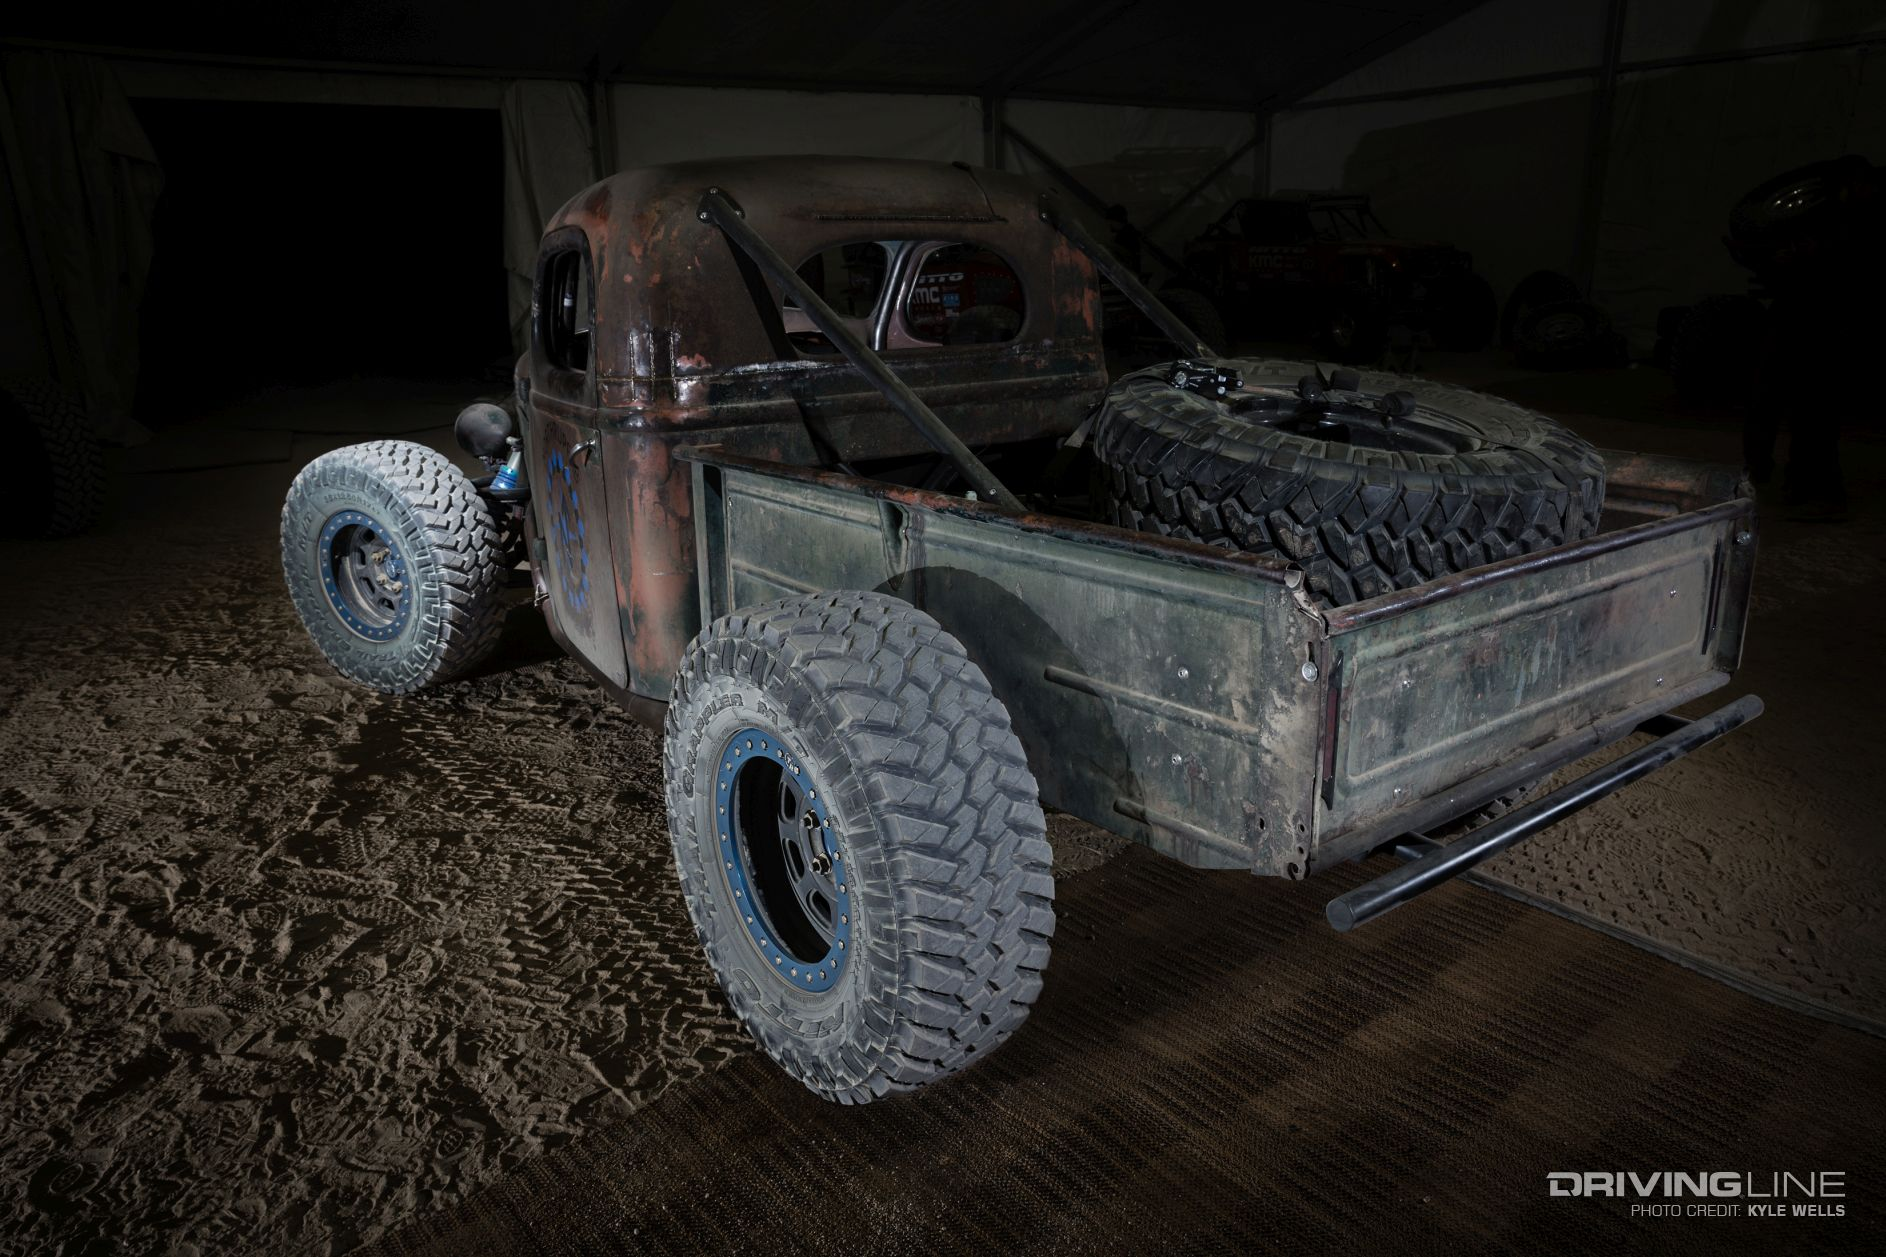 Trophy Rat A Hot Rod Pickup With Real Off Road Chops